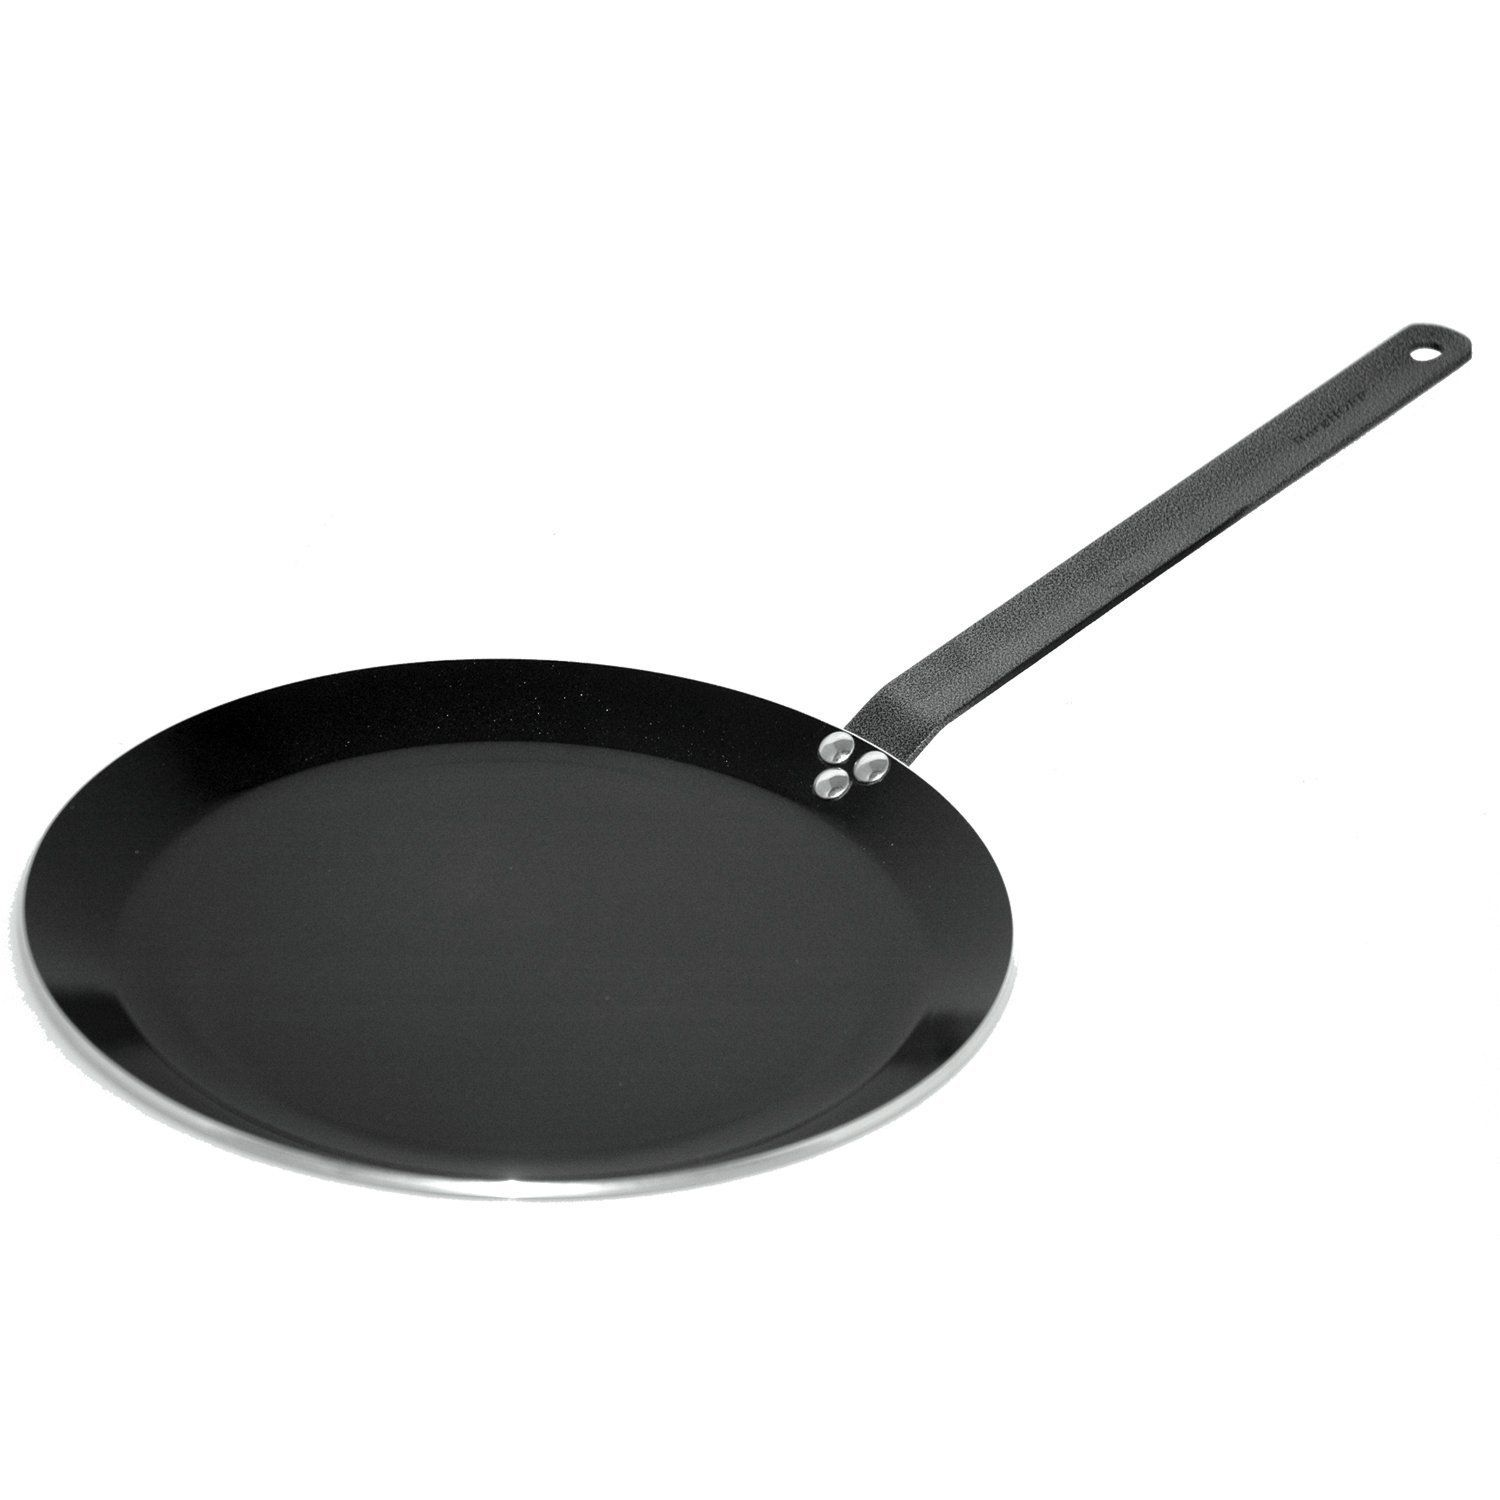 Cookware gt see more select by calphalon ceramic nonstick 8 inch an - Berghoff Hotel Line 12 Inch Non Stick Pancake Pan You Can Find